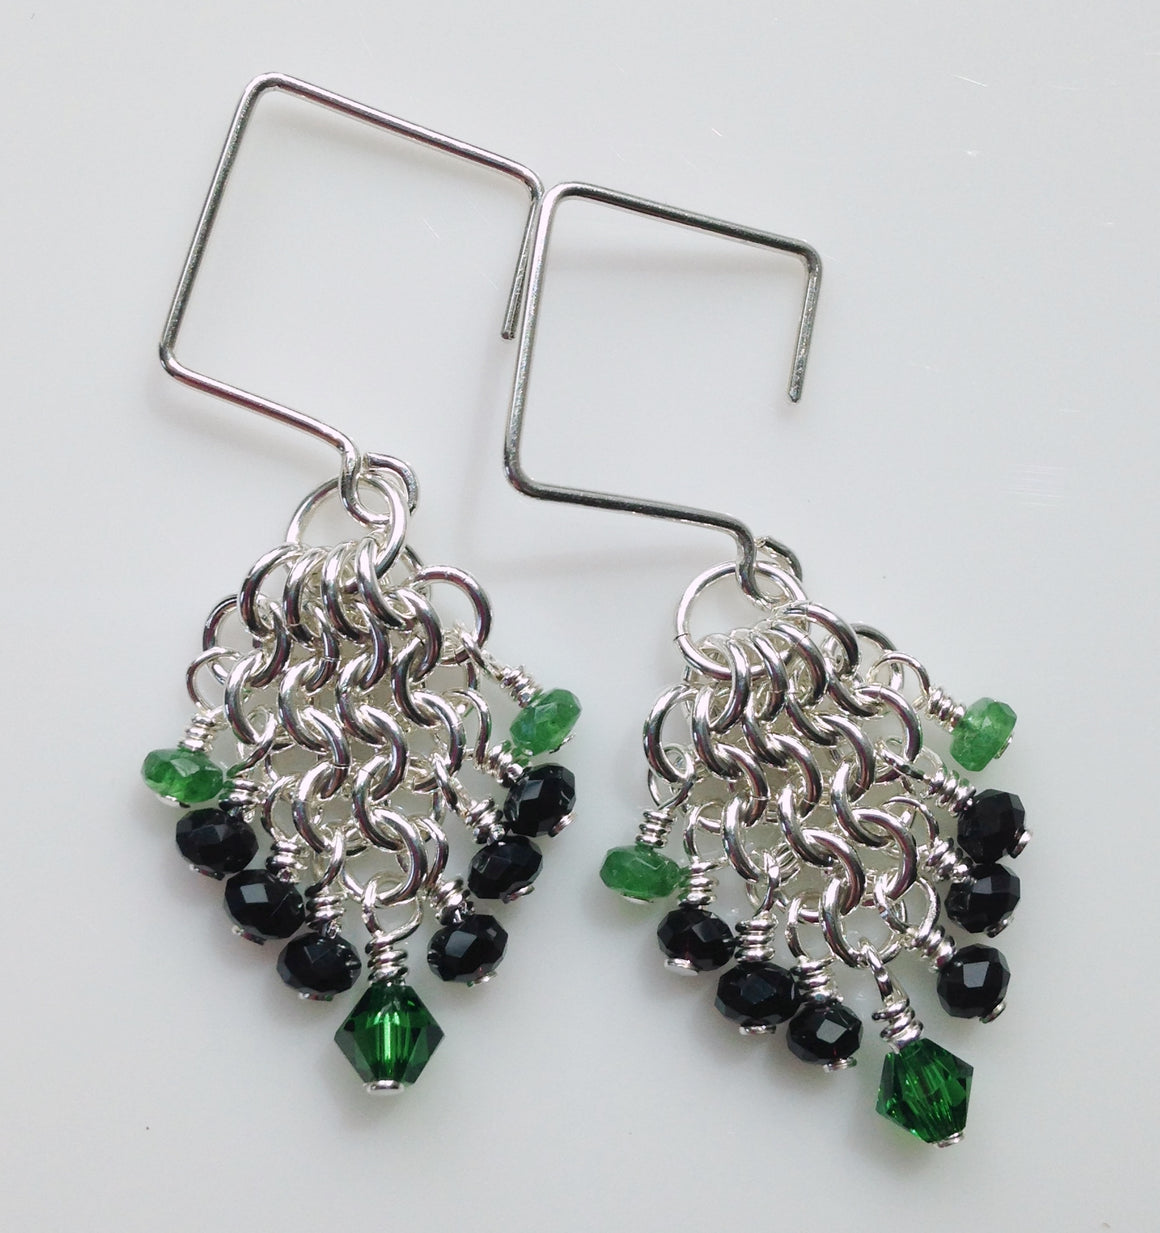 Emerald, onyx and crystal chainmaille earrings